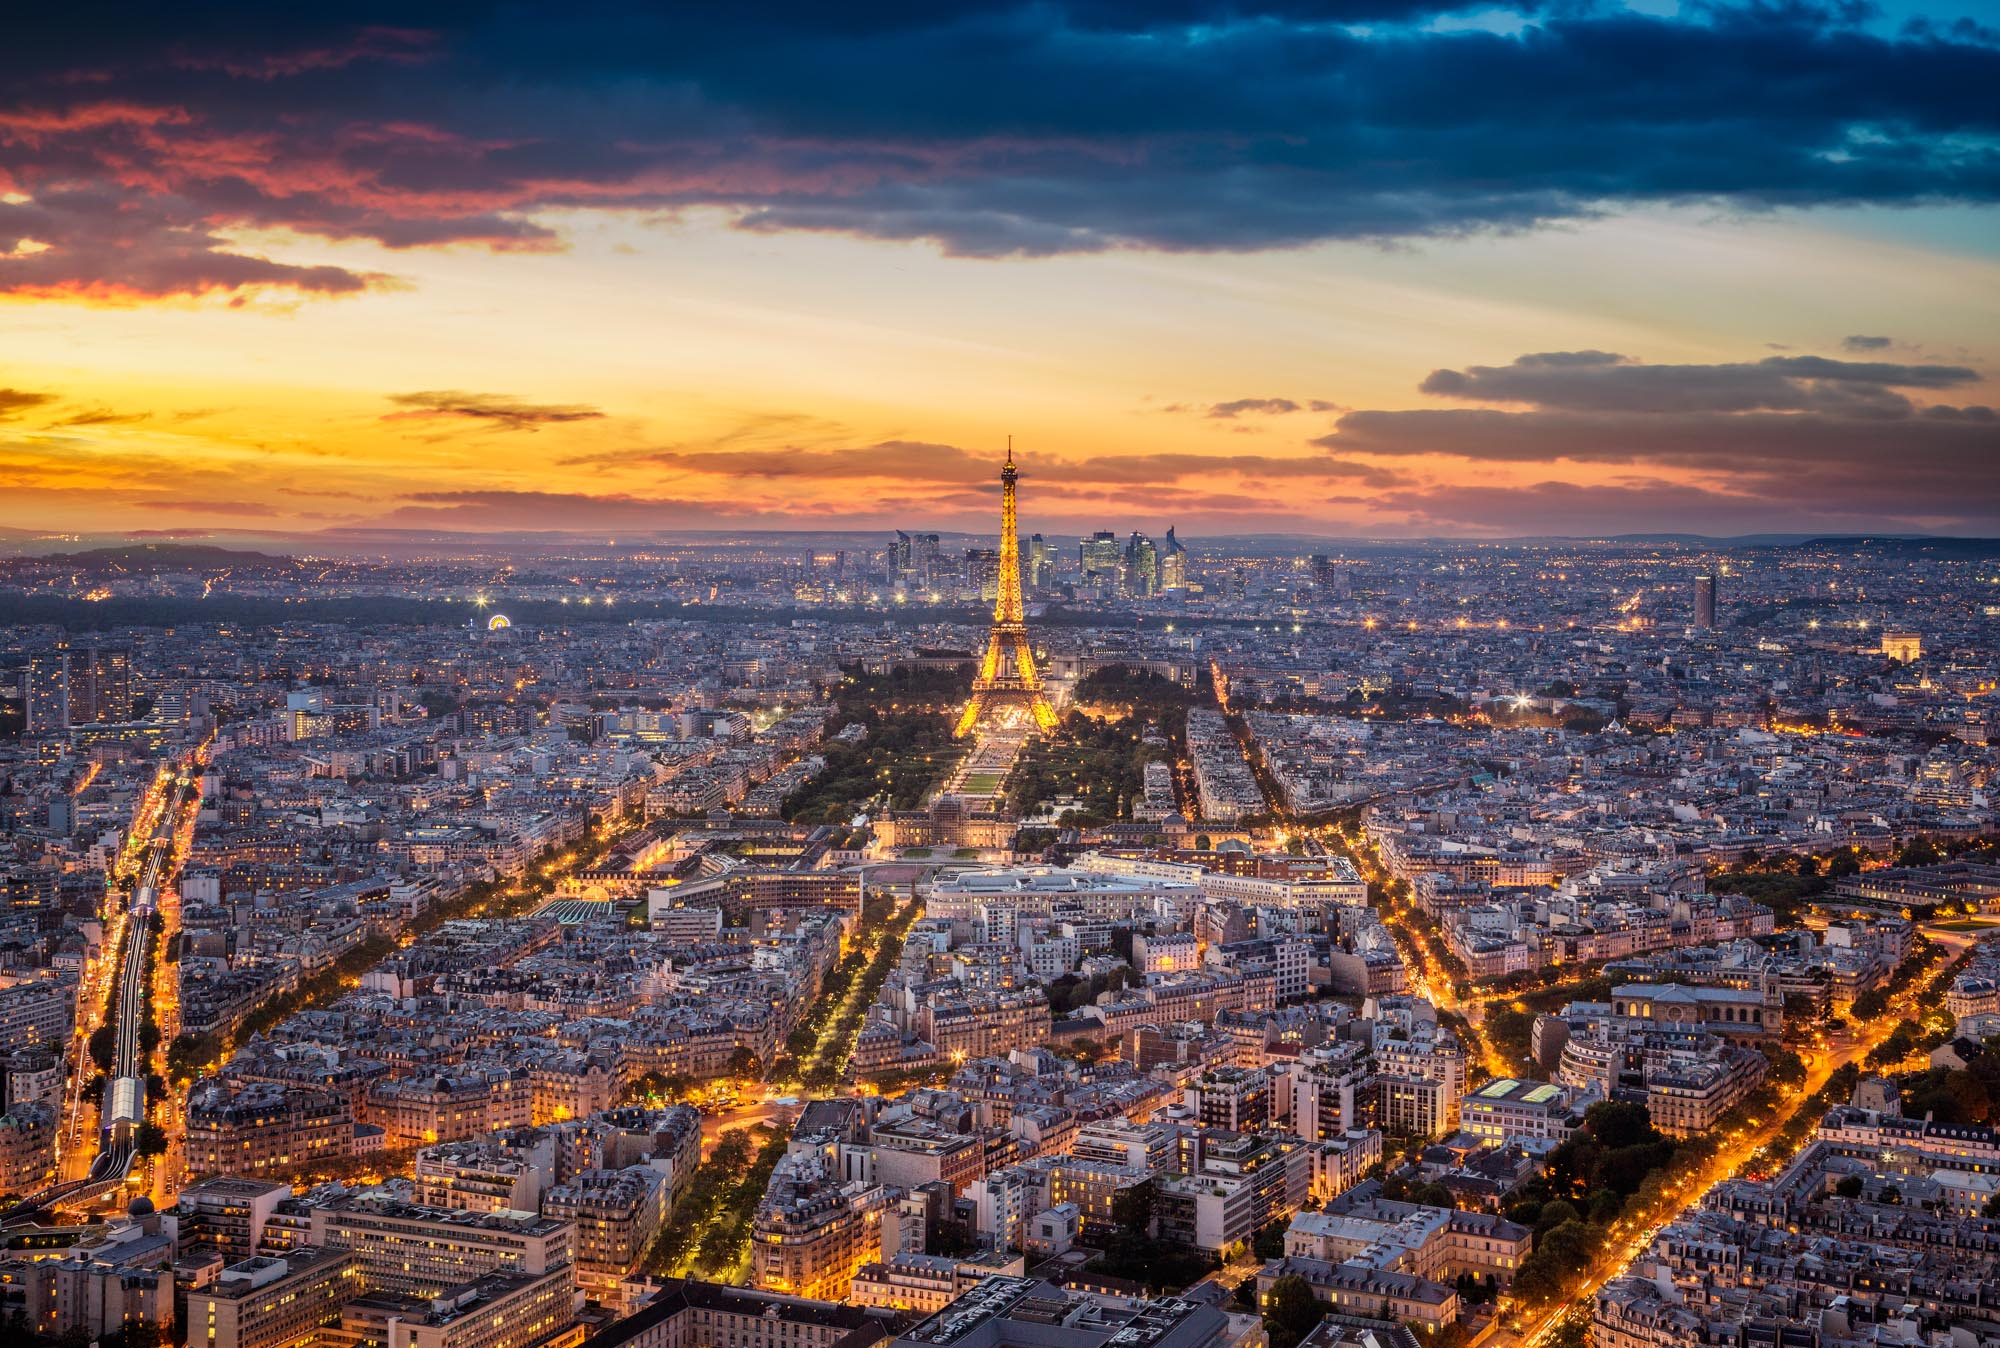 long exposure night photography of the Eiffel Tower and Paris lights at sunset viewed from above